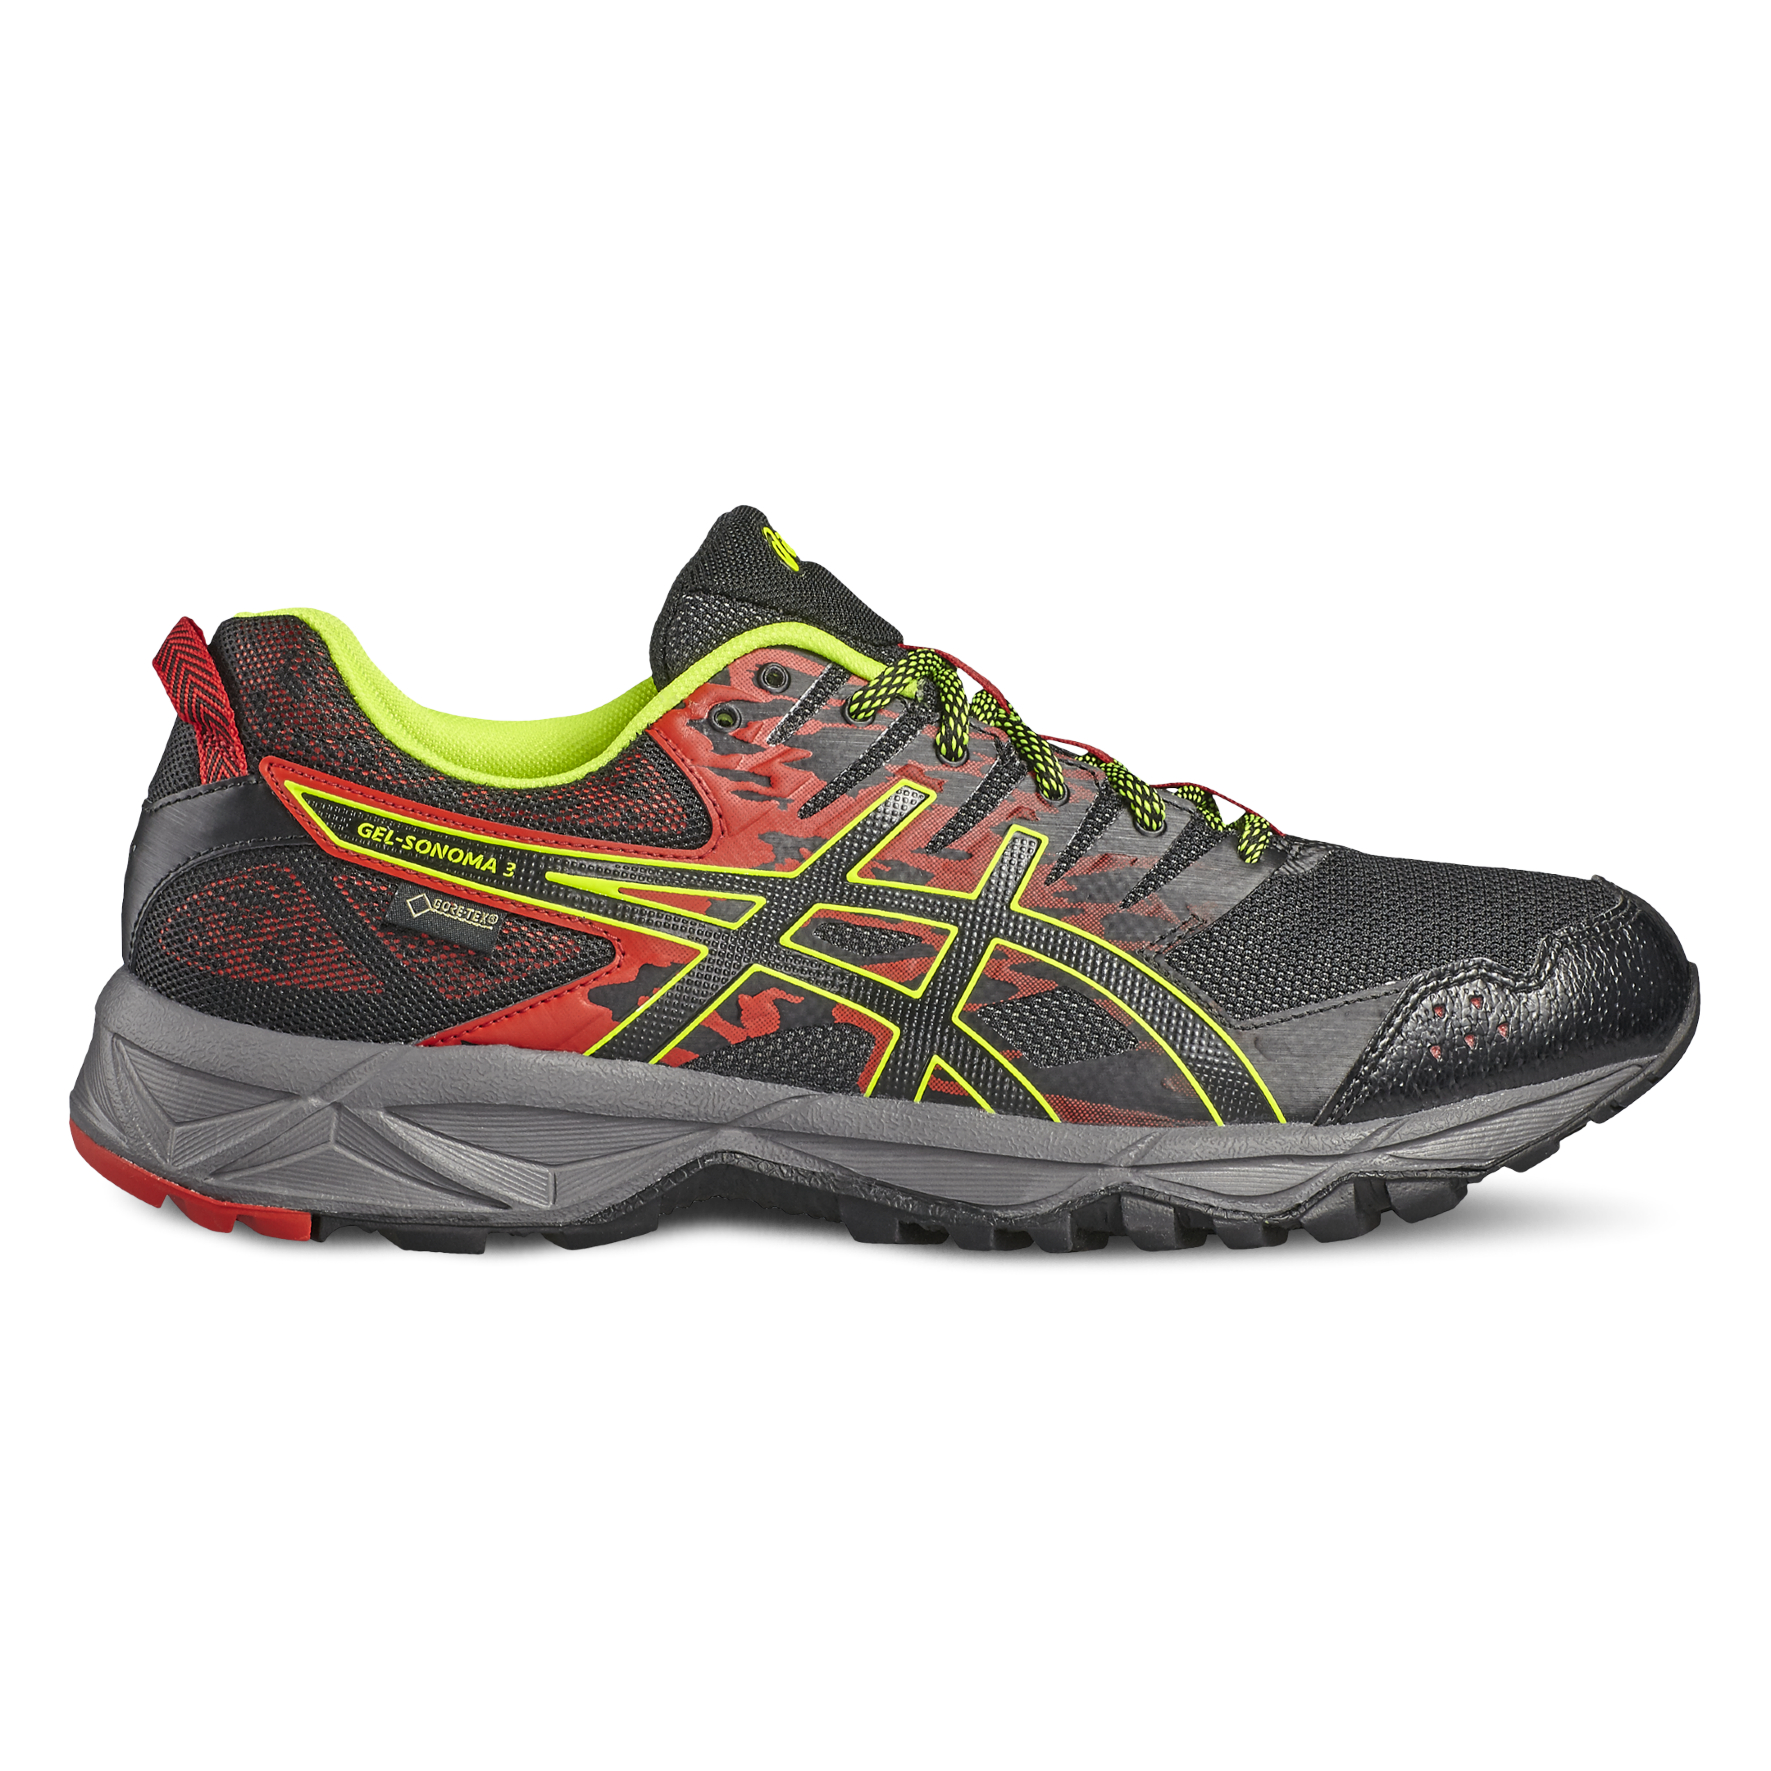 3 France Wiggle Sonoma Chaussures Gtx Asics Trail De Gel Shoes AawAqzXCx